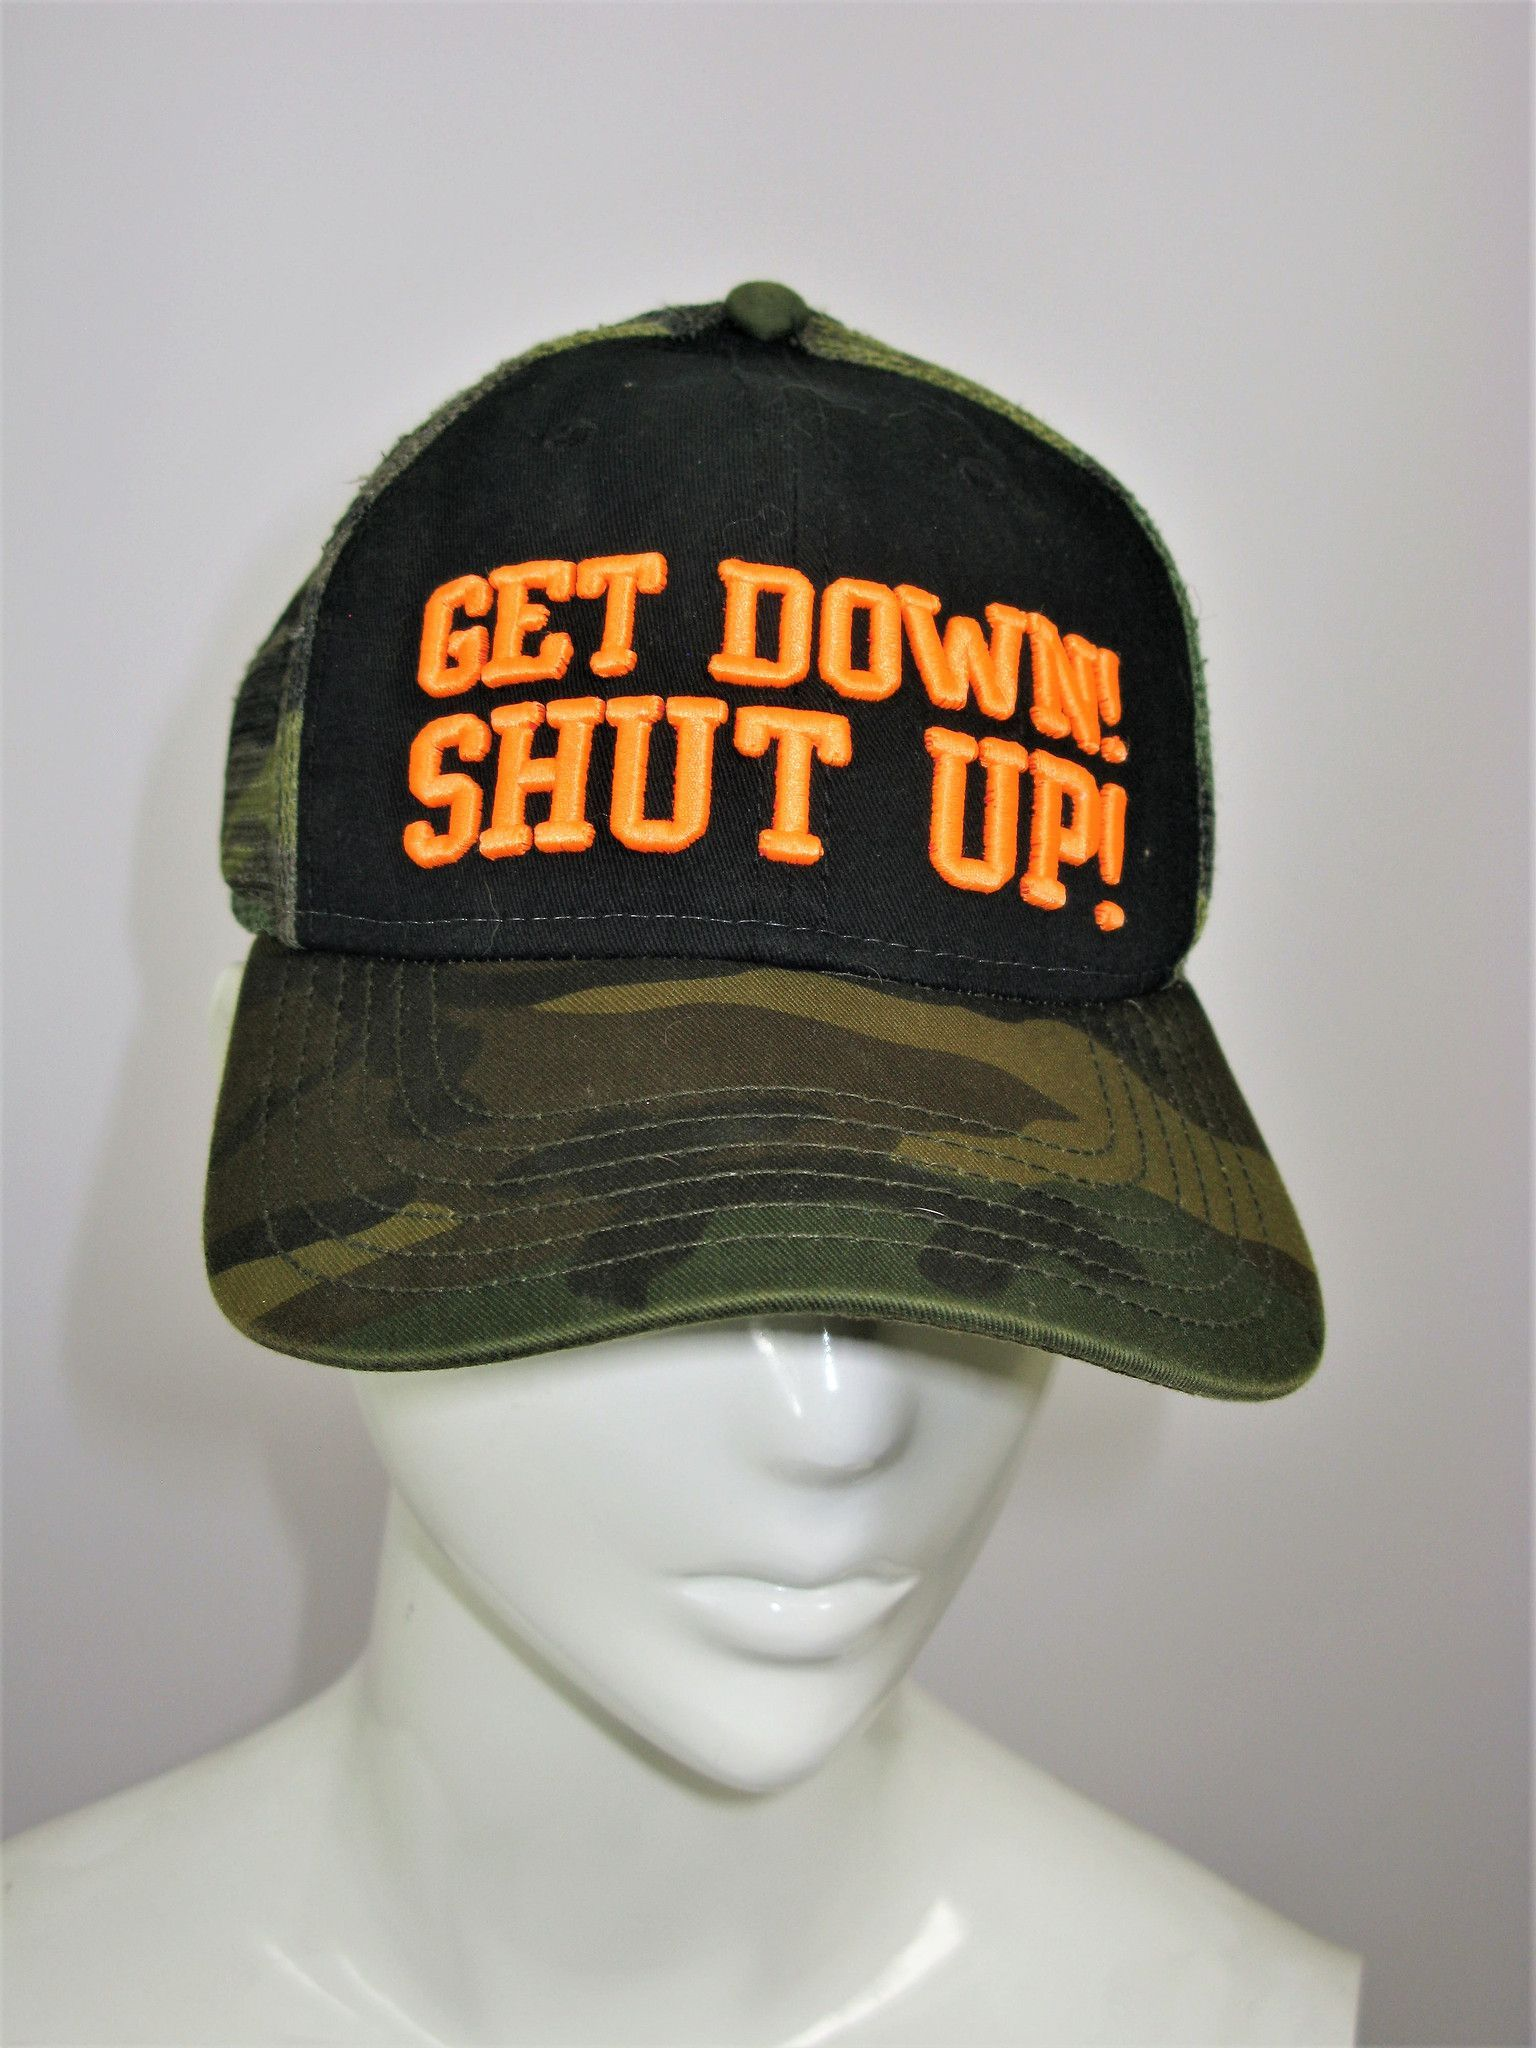 Bubba Gump Shrimp Co  Get Down Shut Up  Camo Trucker Hat  185c20307ec82